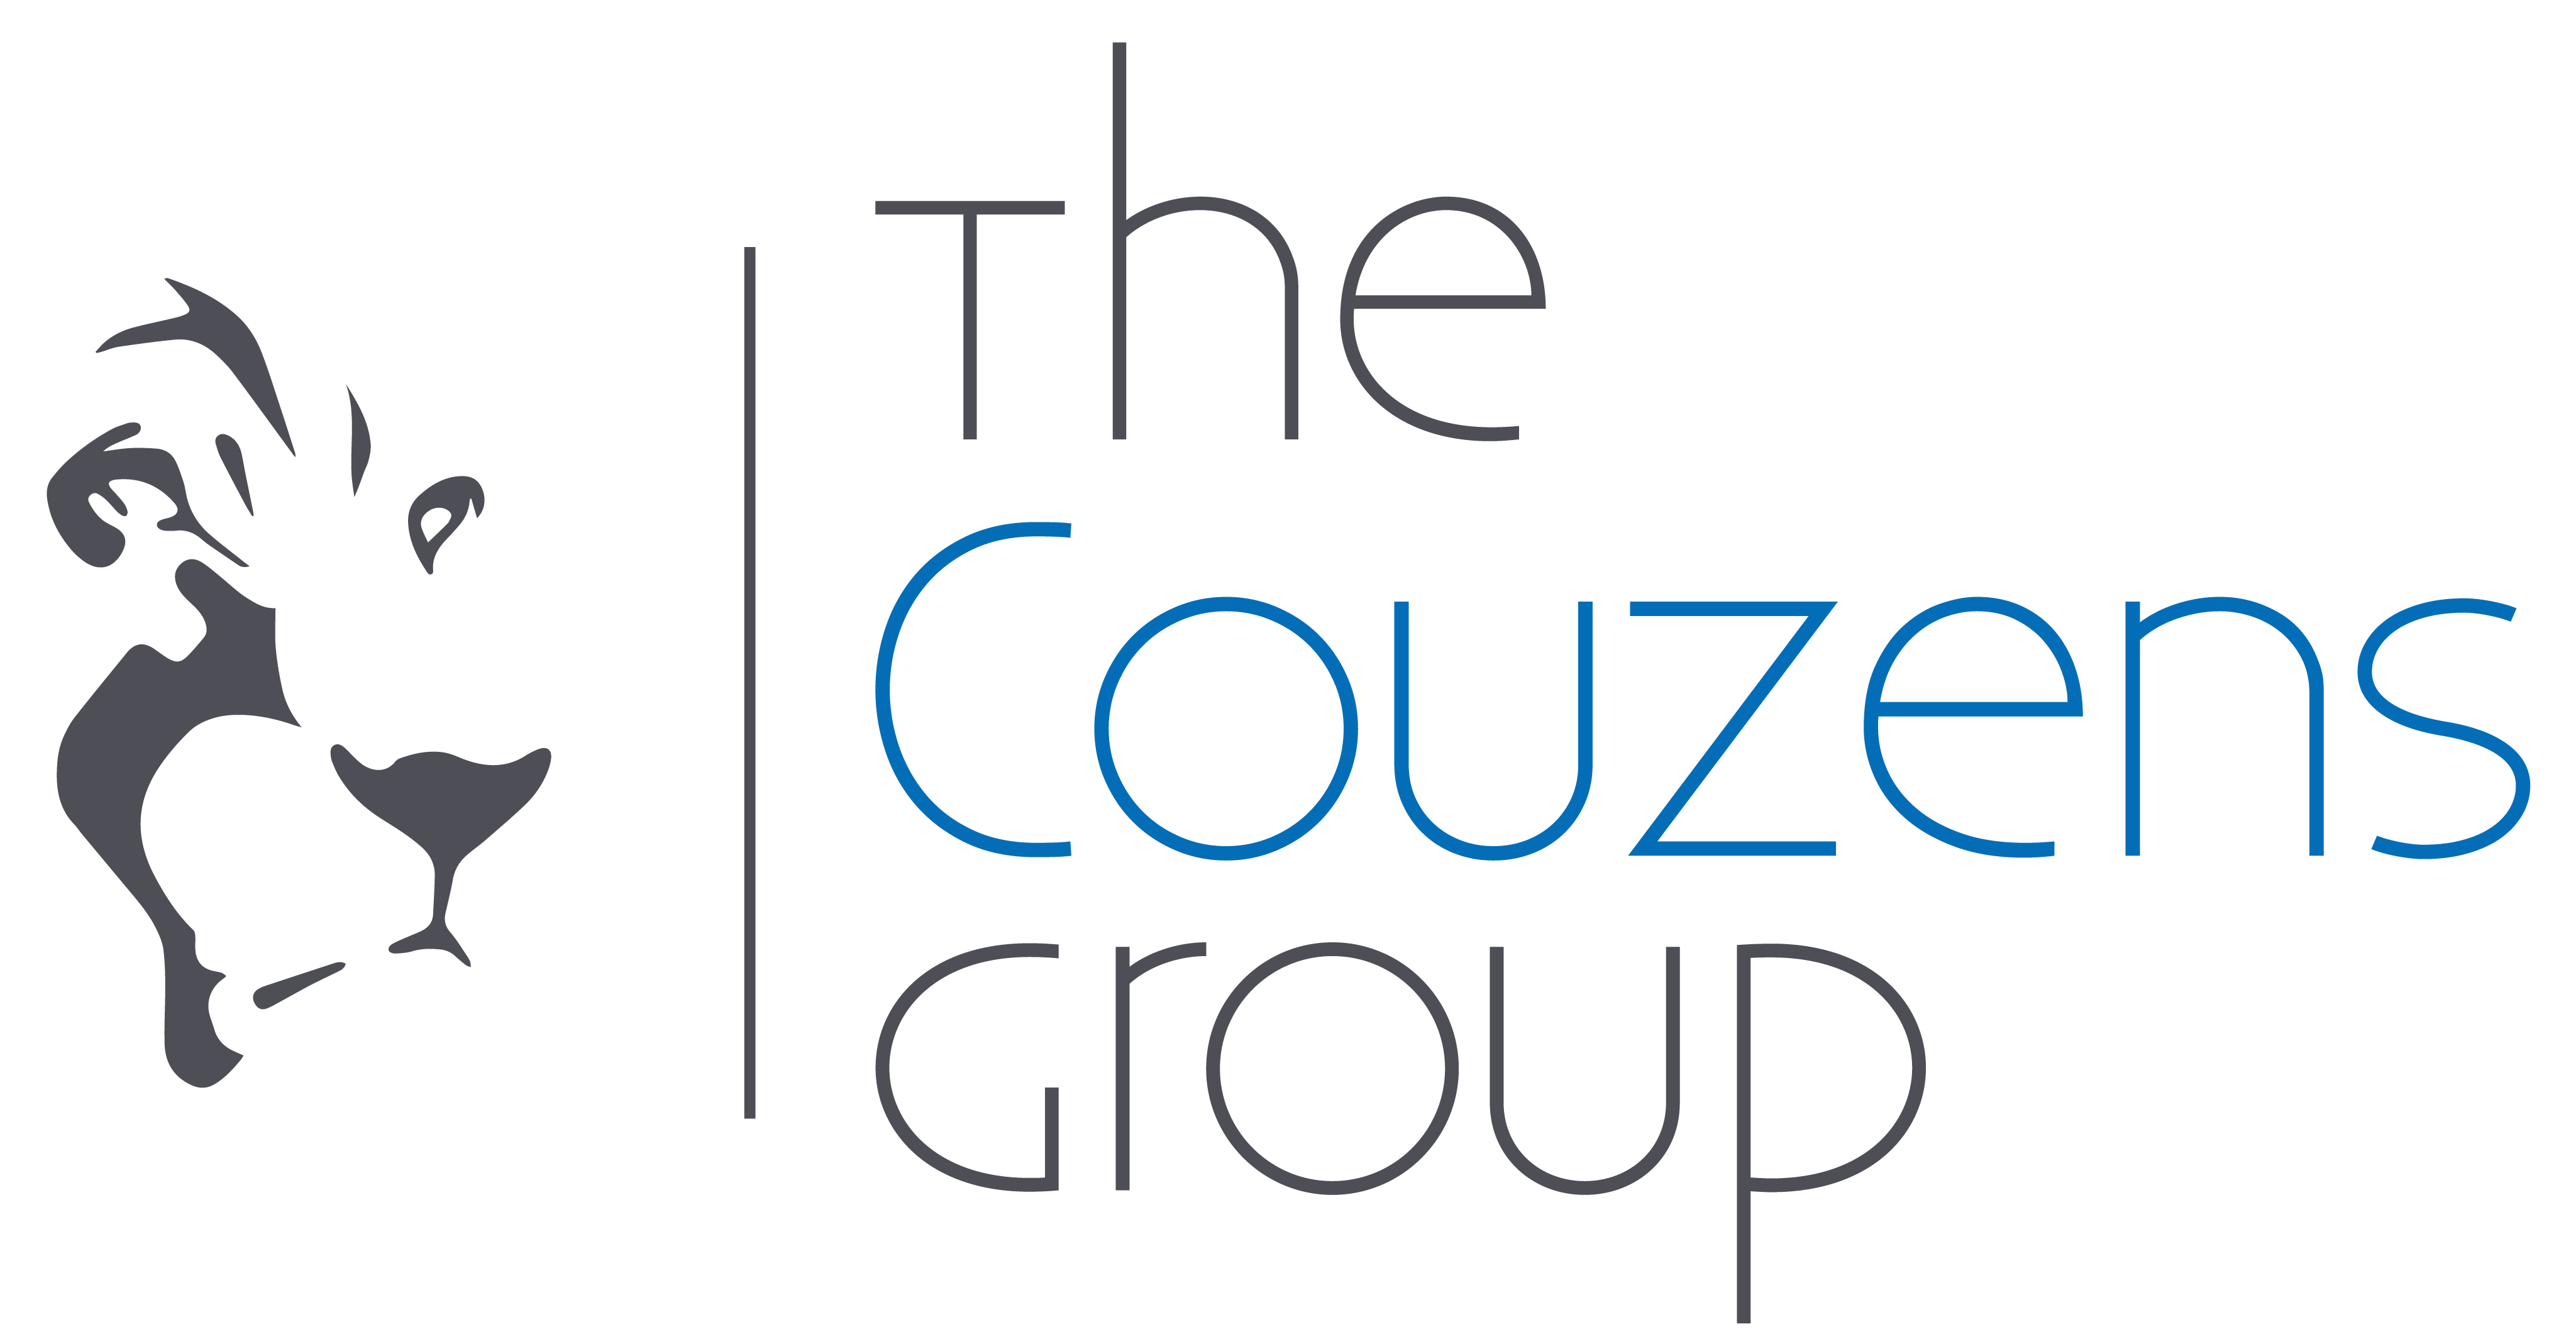 The Couzens Group